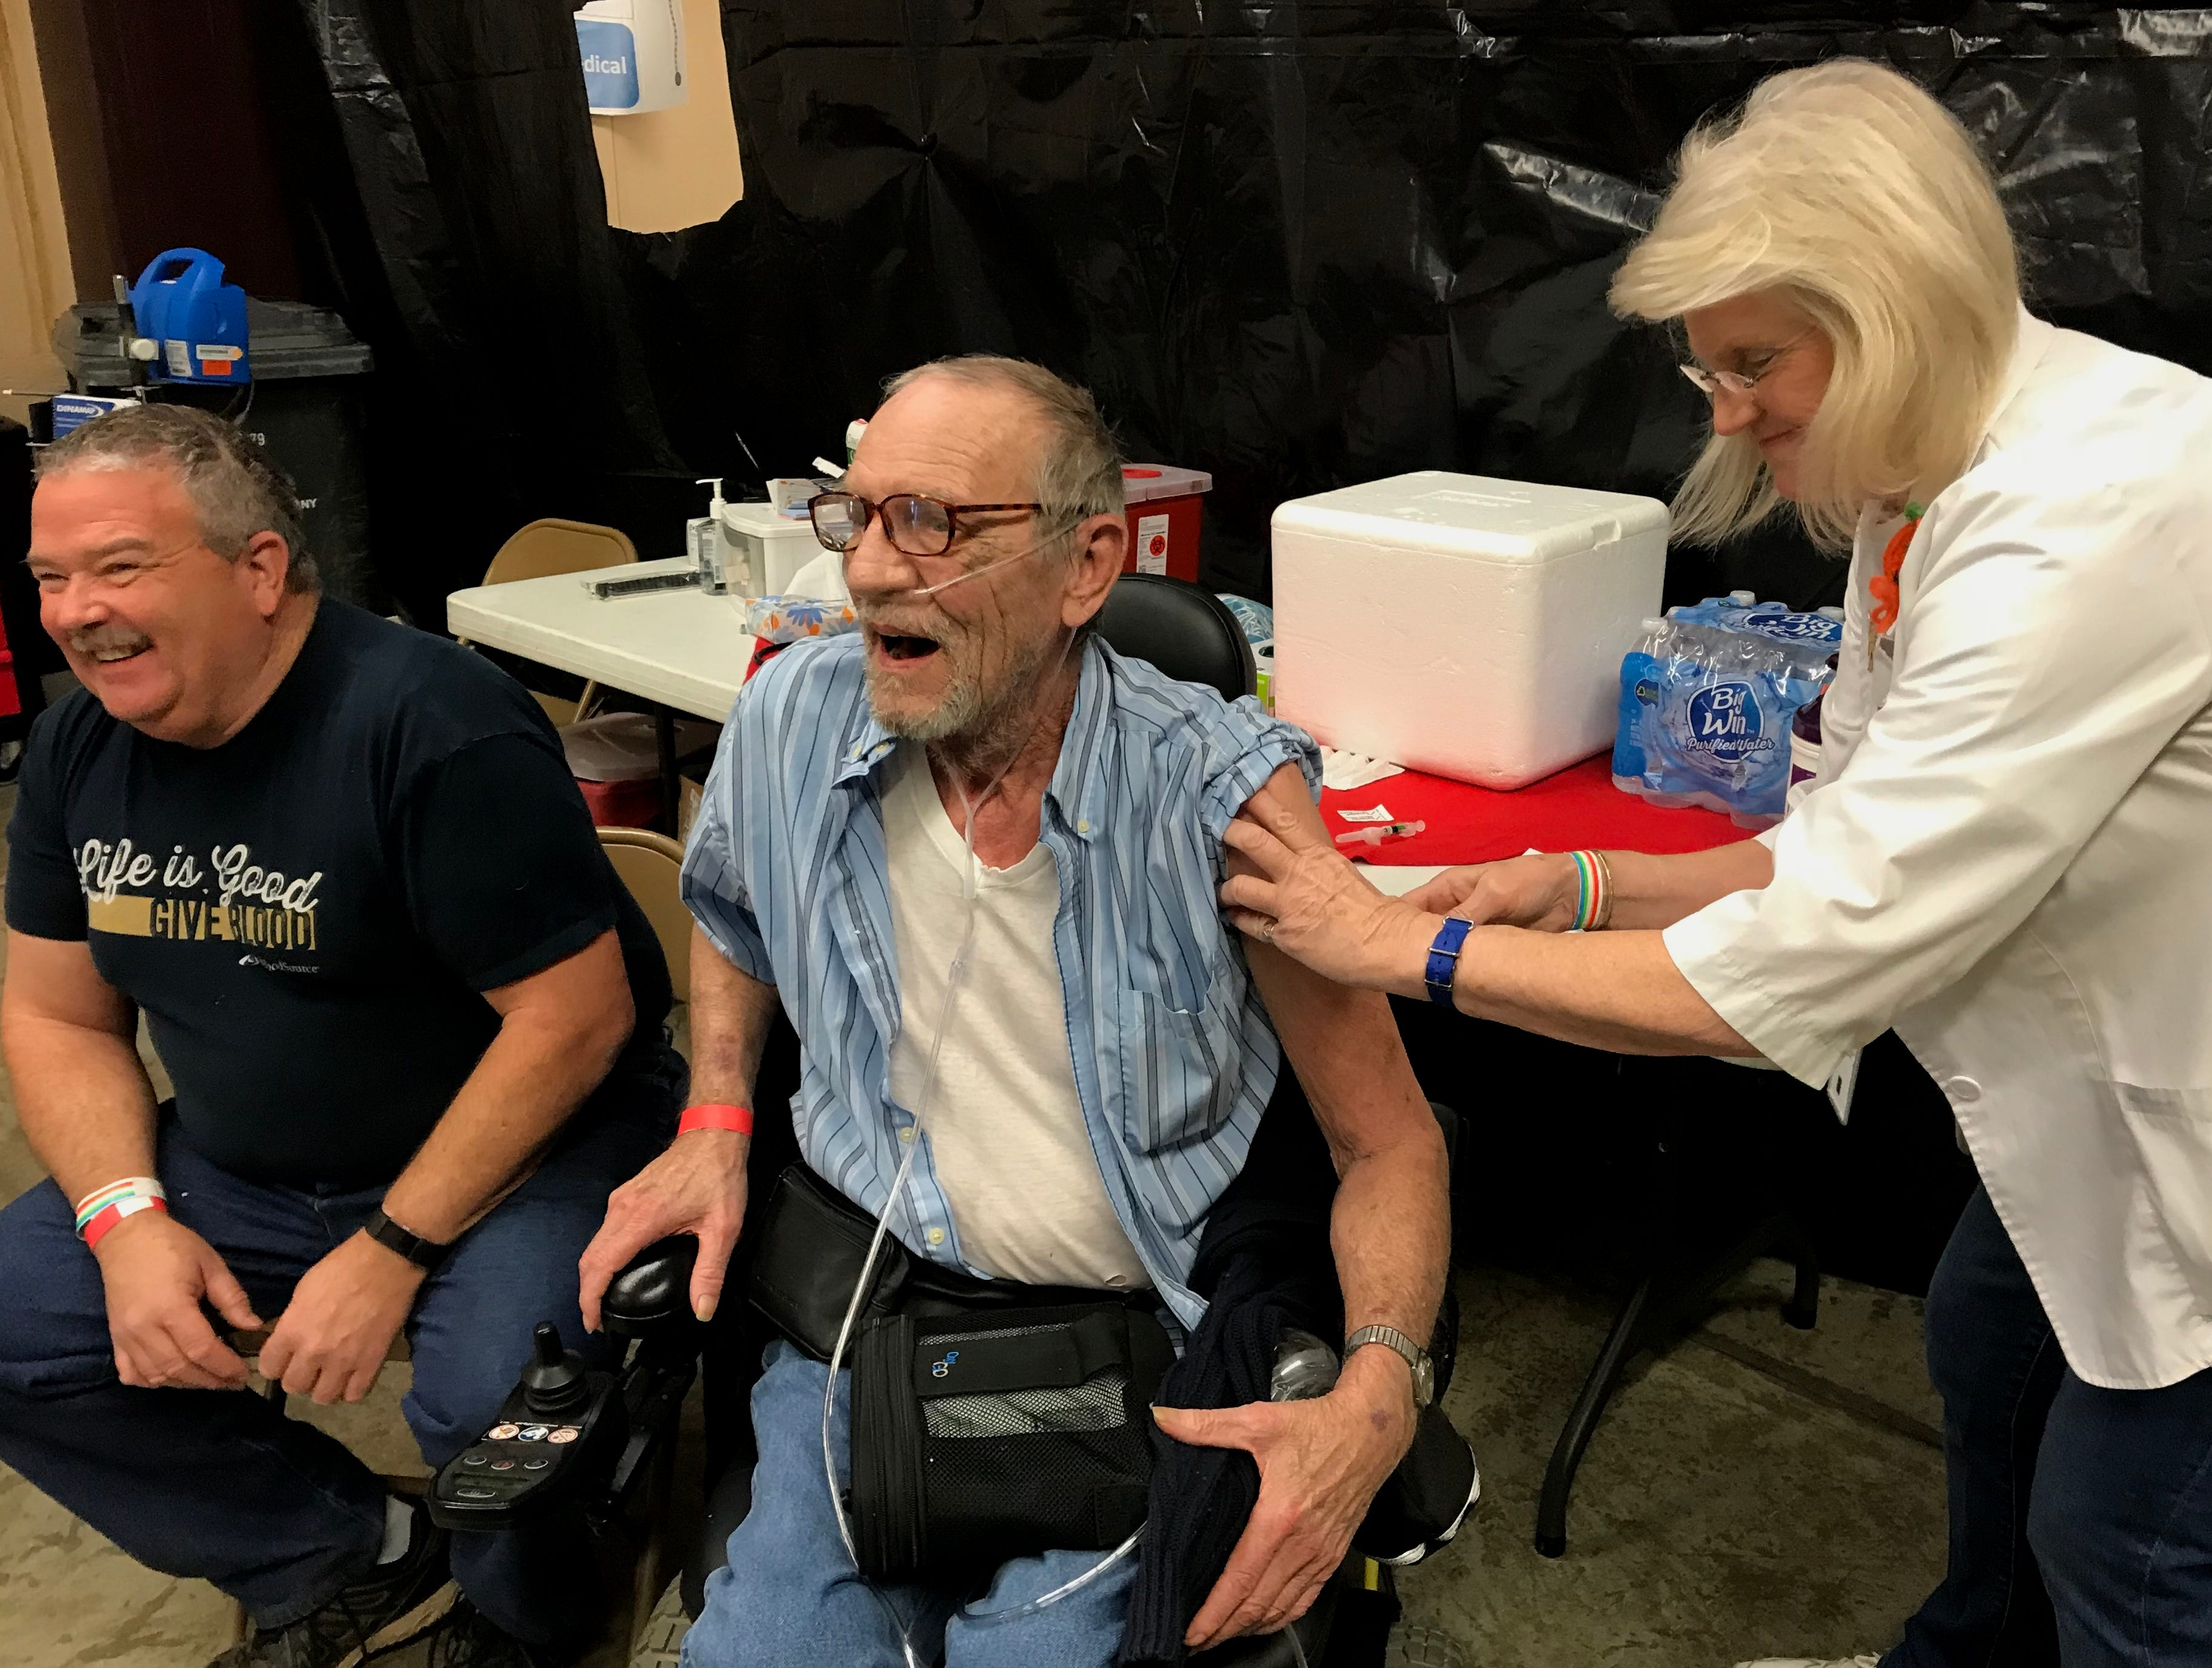 Neal Myers, a 59-year-old U.S. Navy veteran, and 72-year-old Don Madsen, an Army vet, got their flu shots at the North Valley Stand Down.